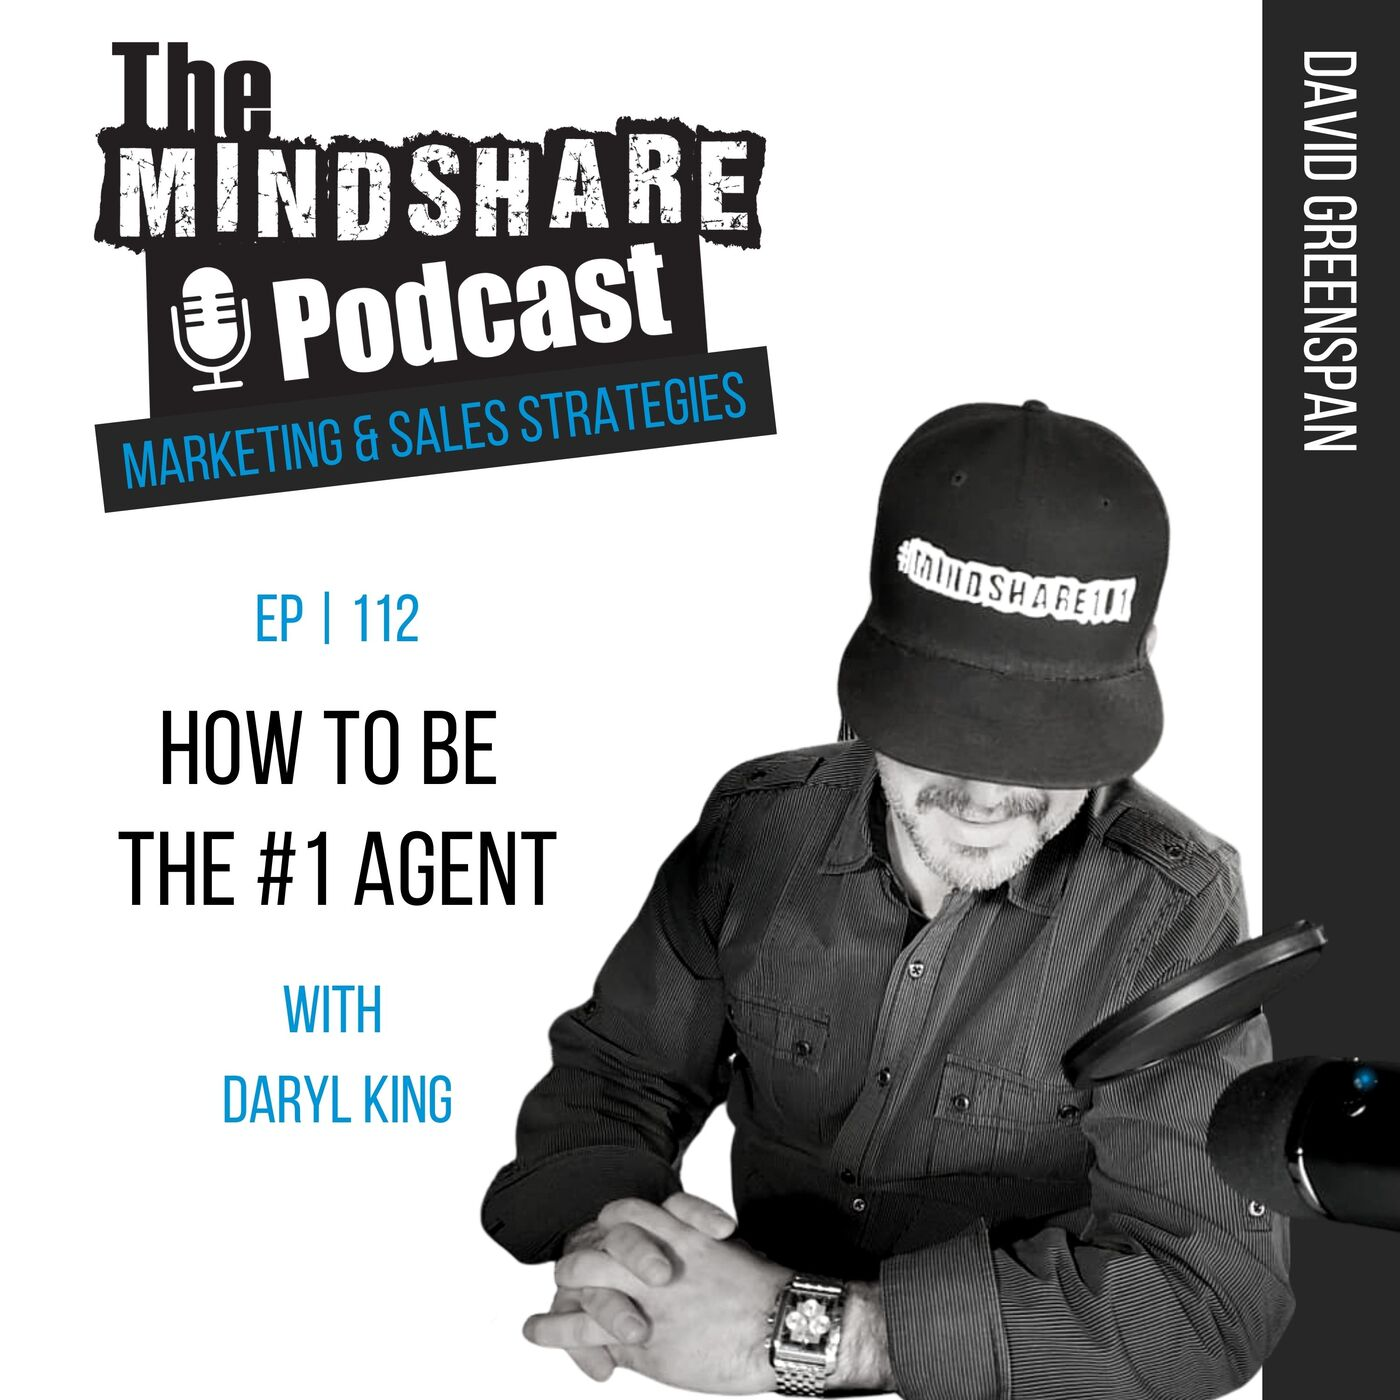 How To Be The #1 Agent, with Special Guest – Daryl King